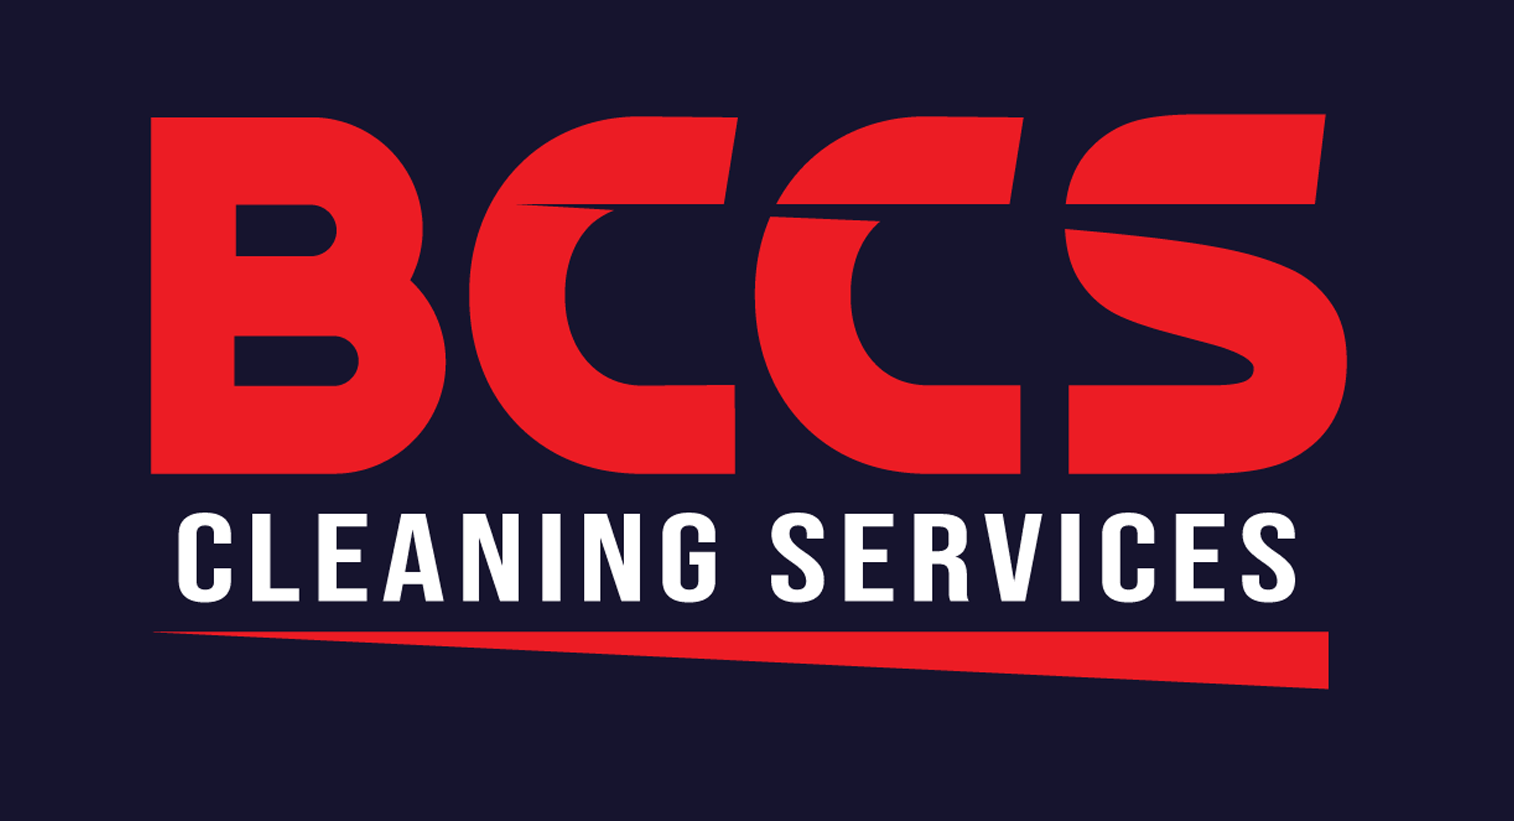 BCCS - Body Corporate Cleaning Services